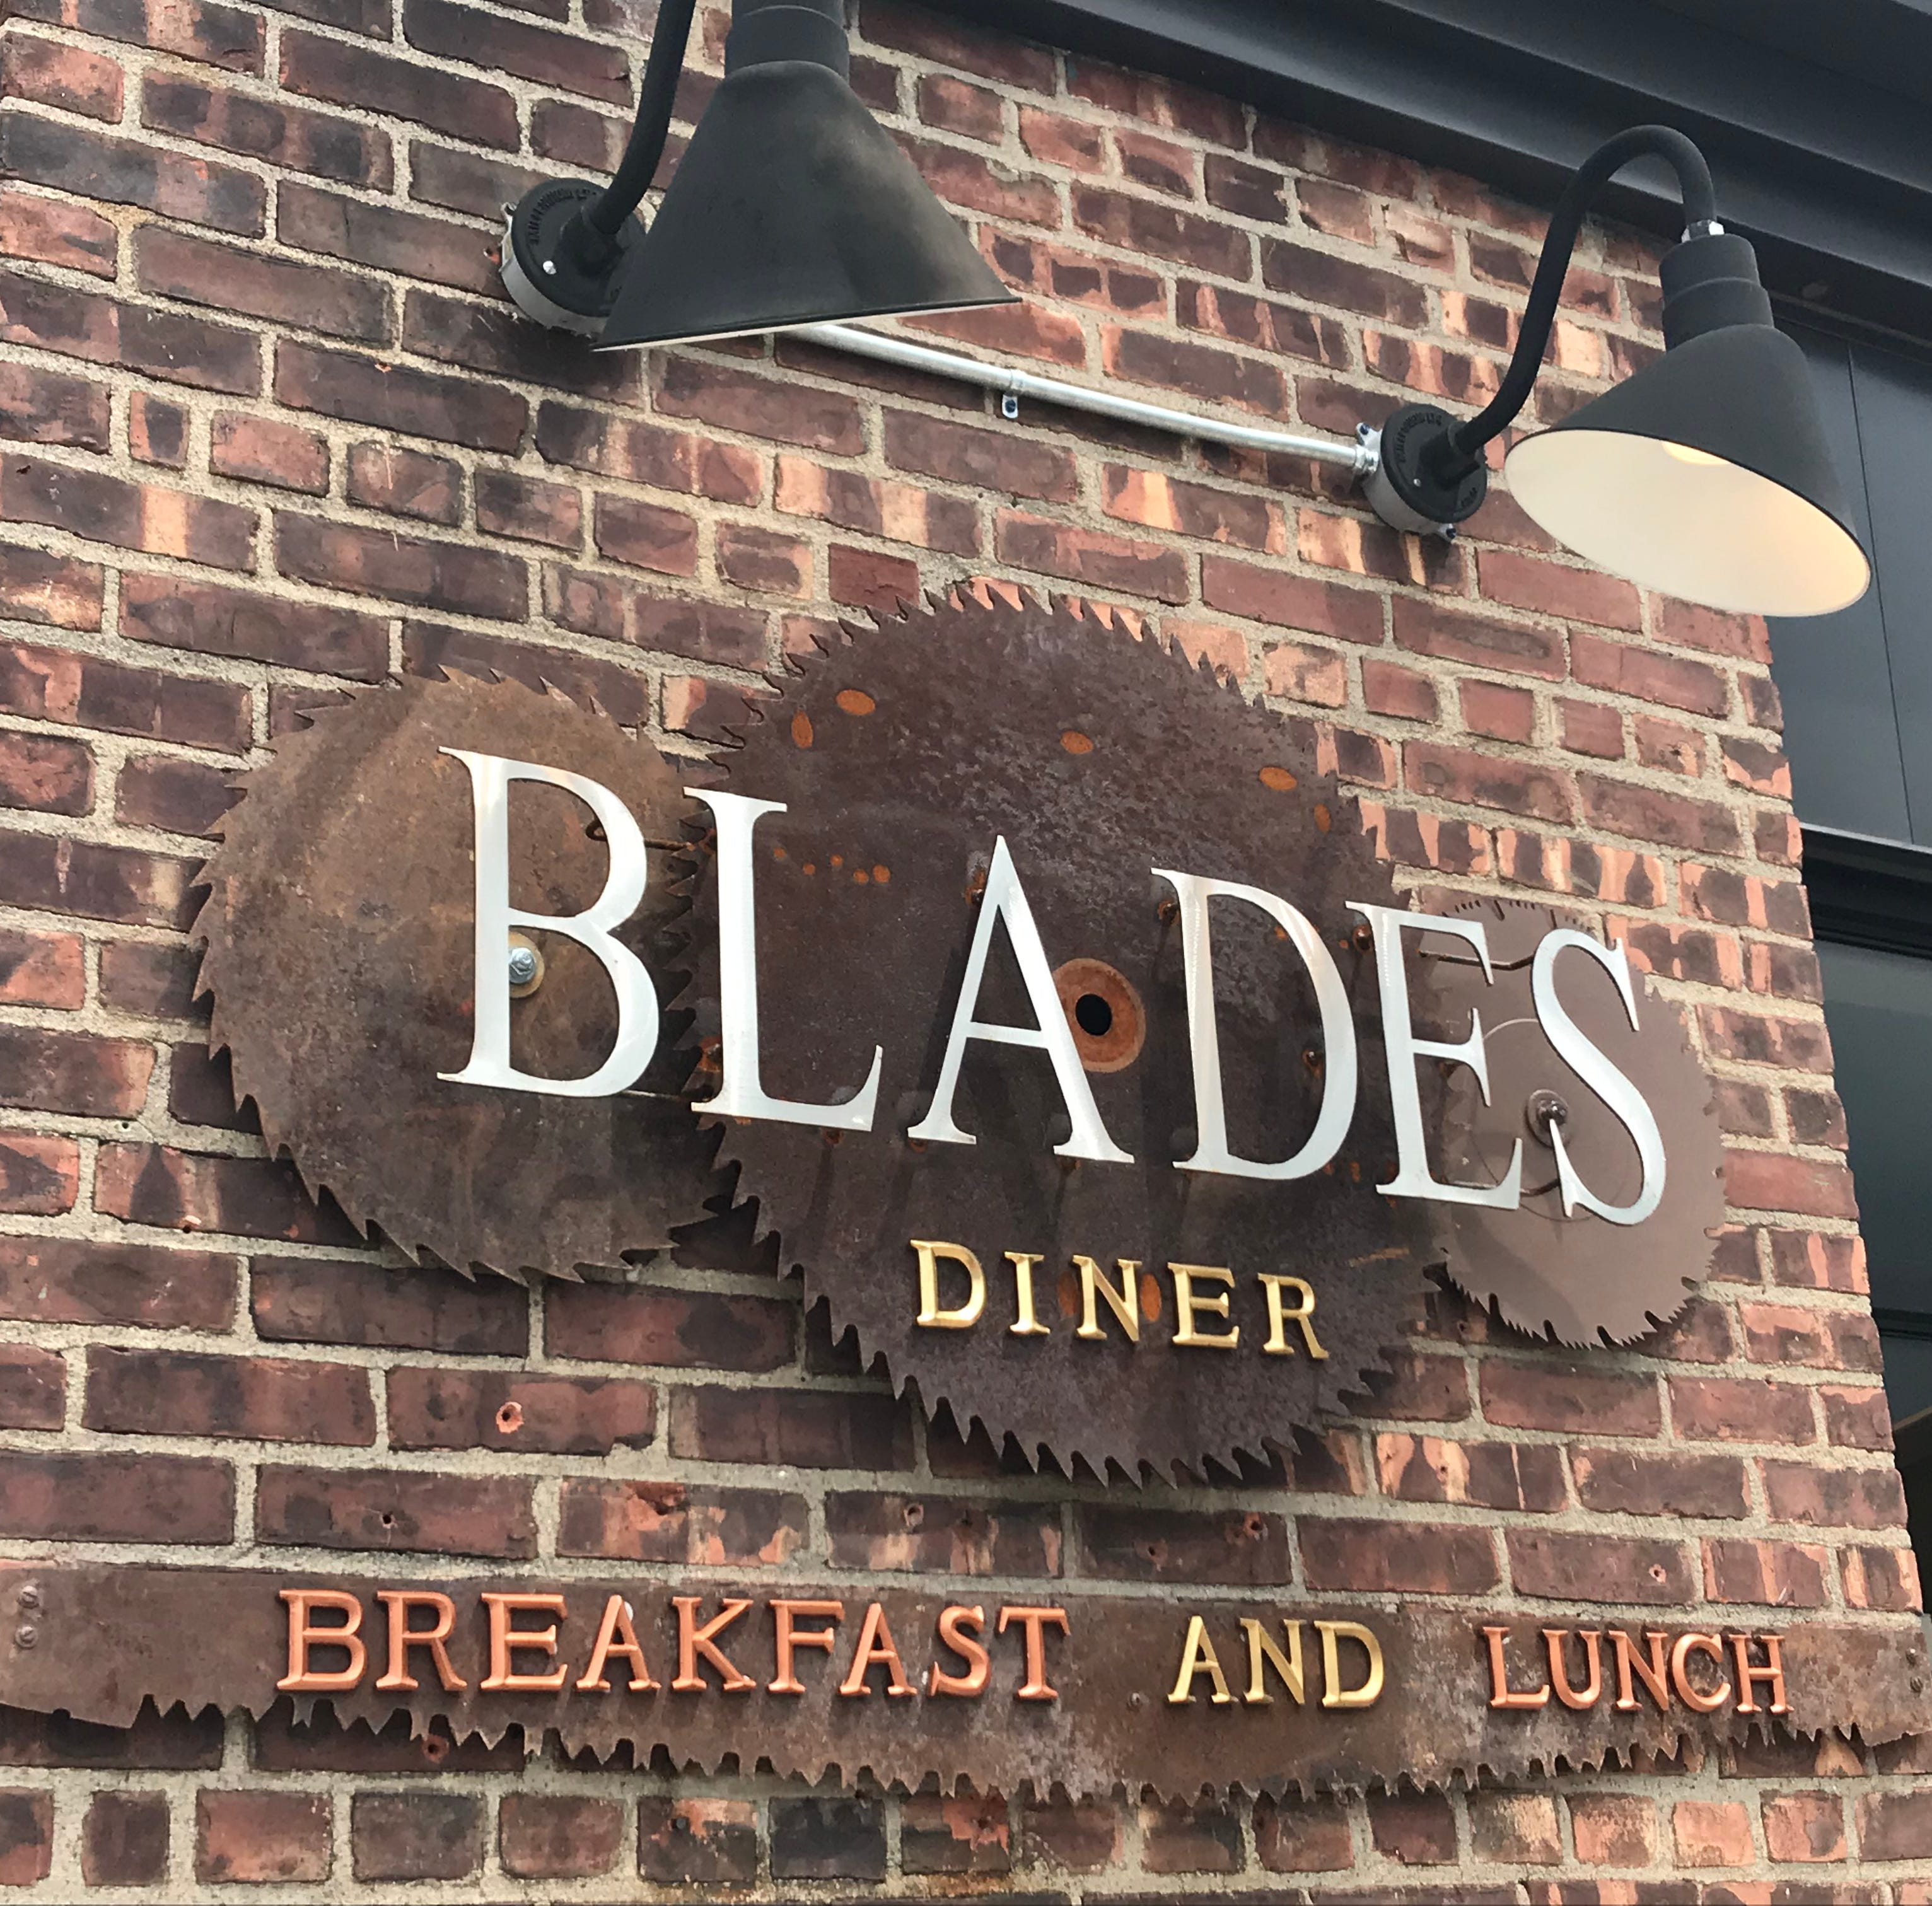 Blades returns to University Avenue with a fresh approach